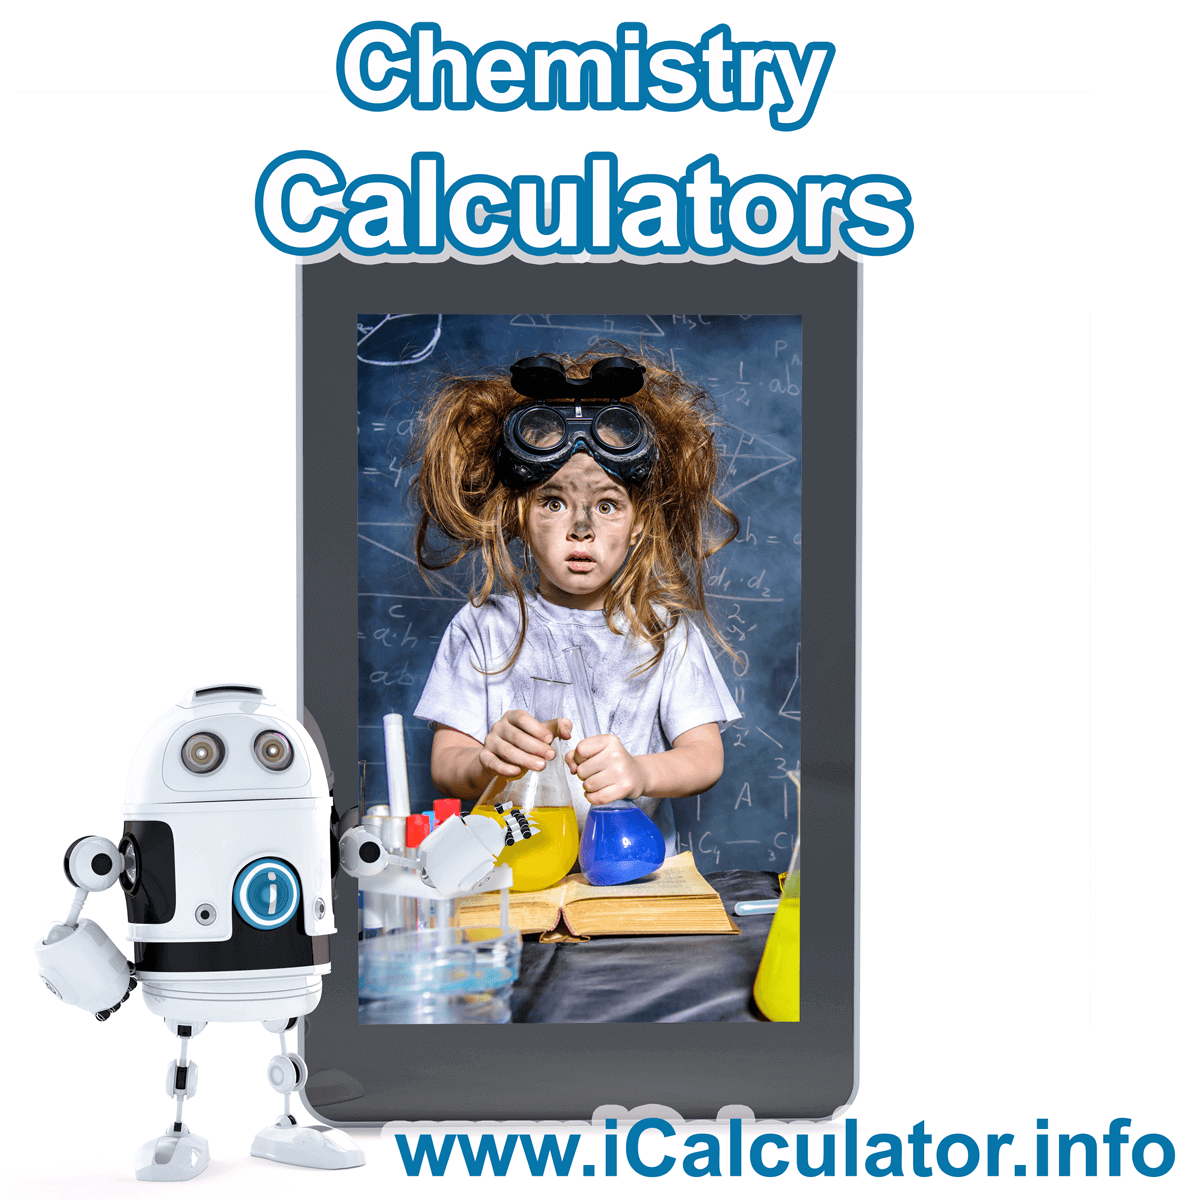 Chemistry Calculators